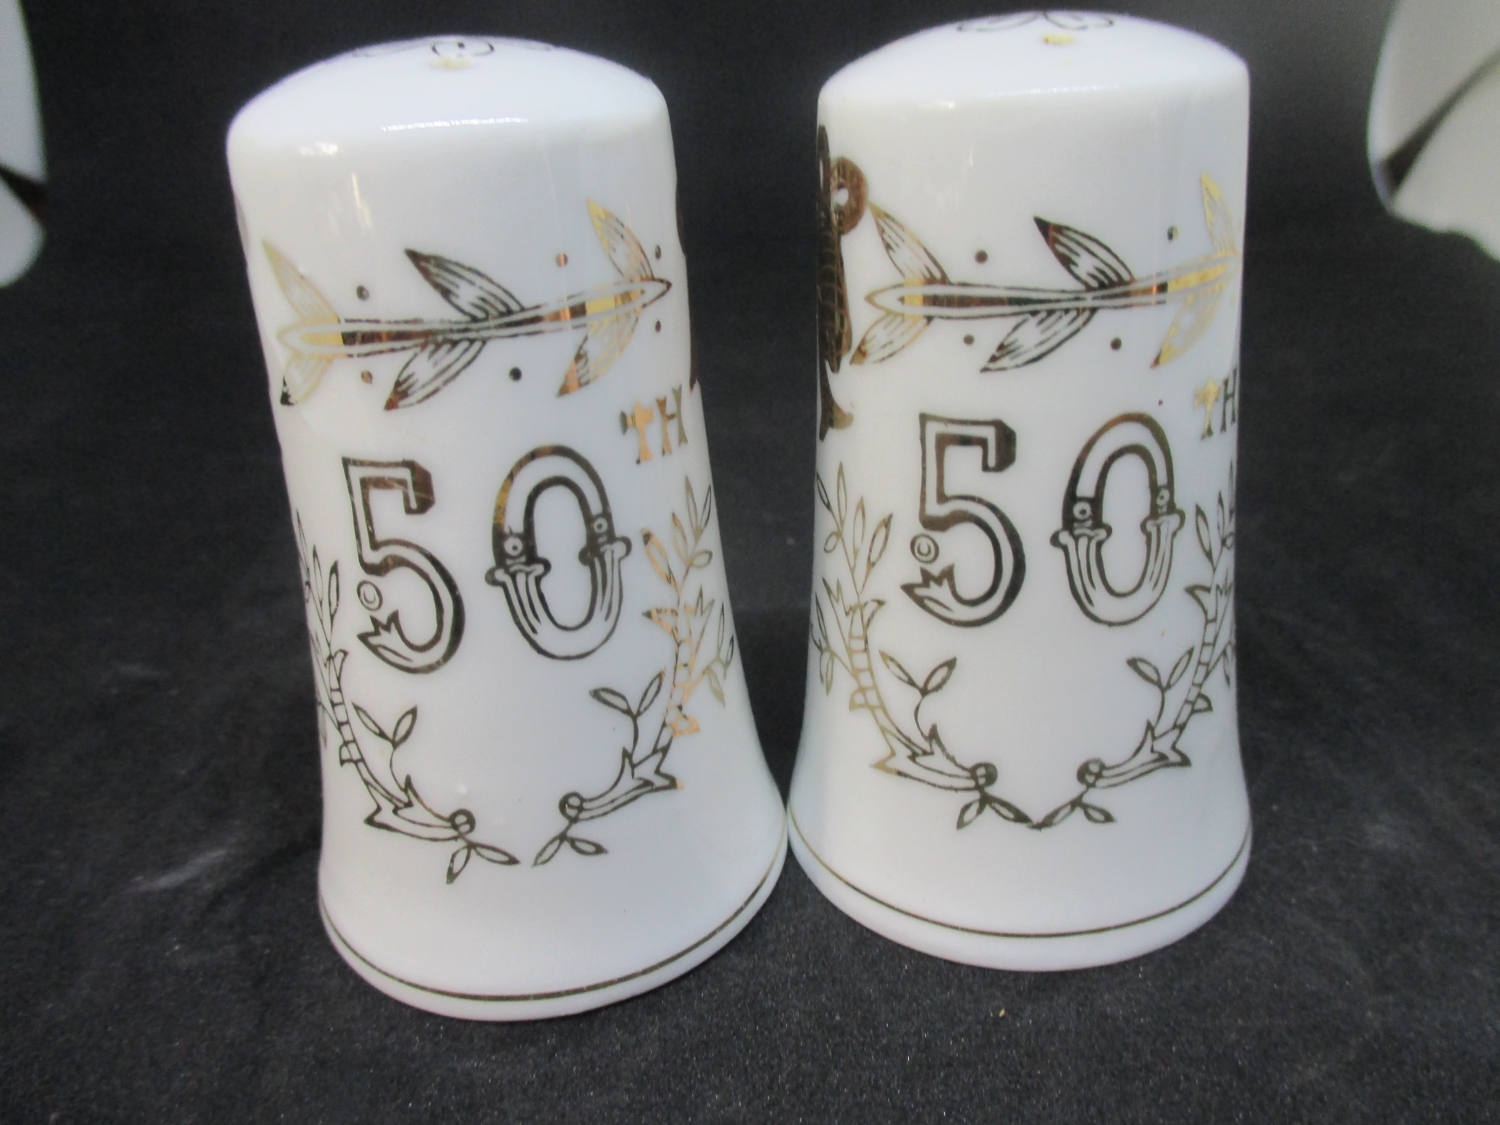 Fantastic Mid Century 50th Anniversary Salt u0026 Pepper Shakers decor collectible display tableware dinning kitchen farmhouse & Fantastic Mid Century 50th Anniversary Salt u0026 Pepper Shakers decor ...